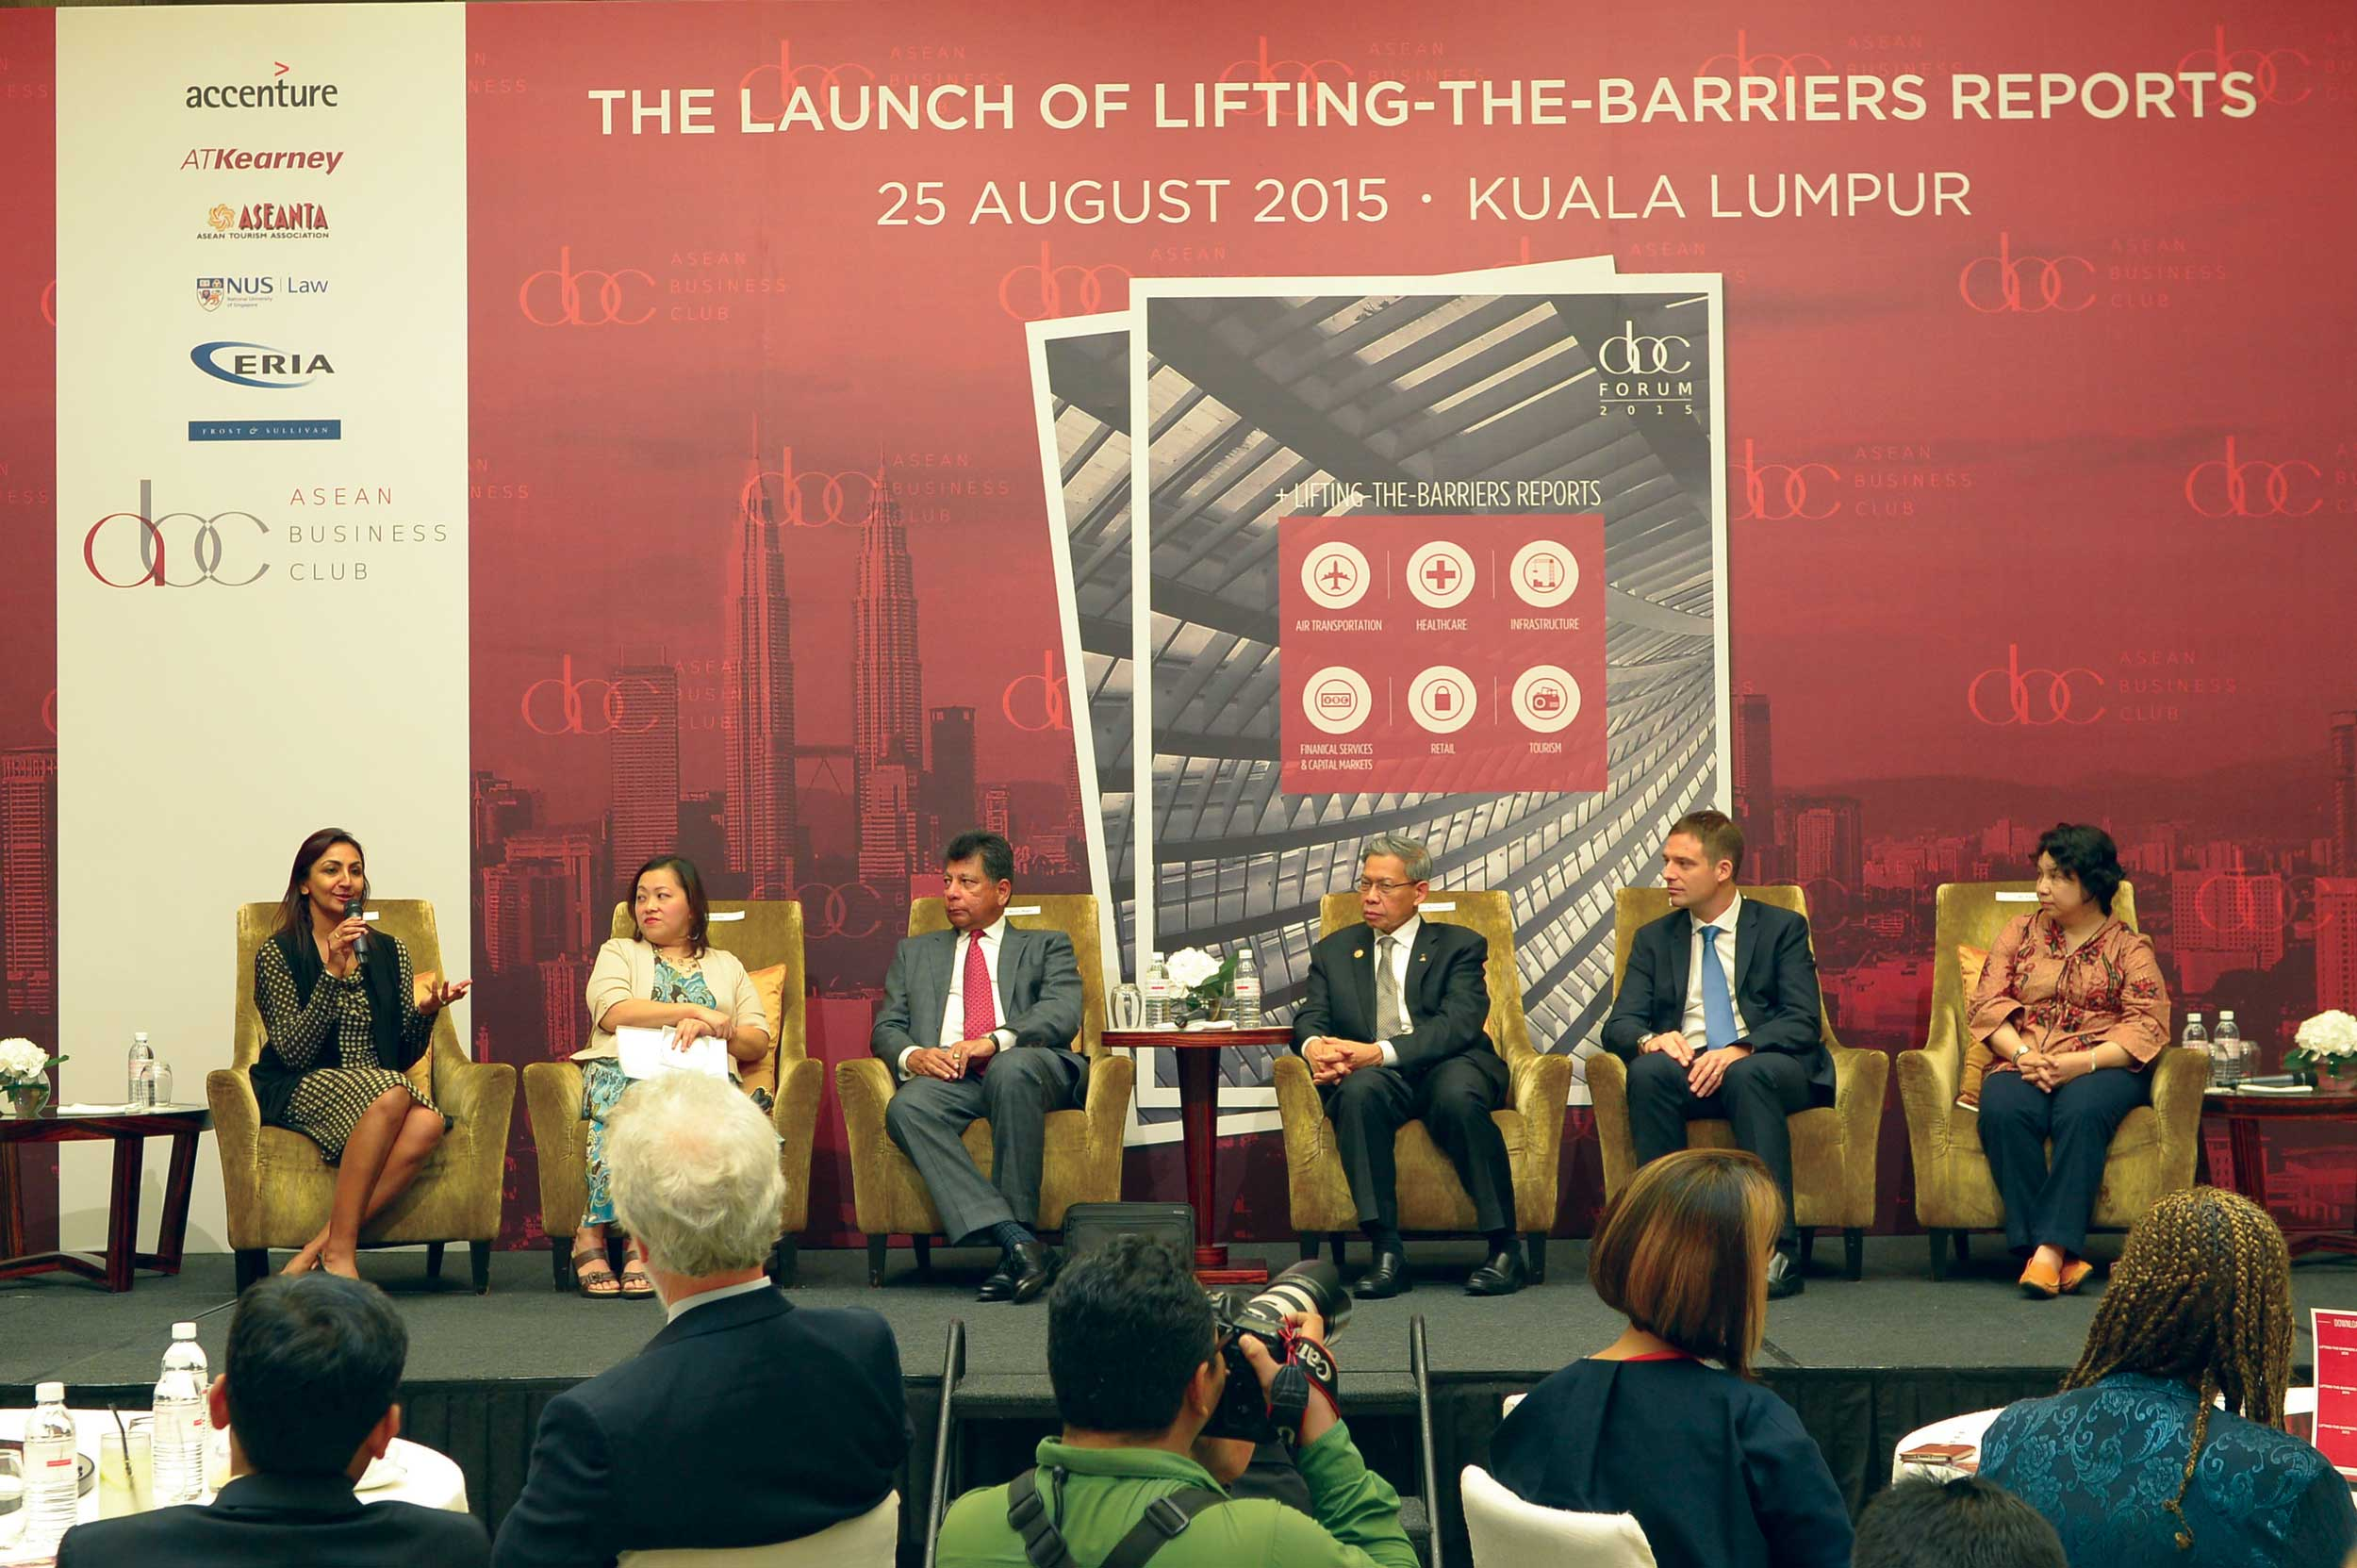 LTB Launch 2015